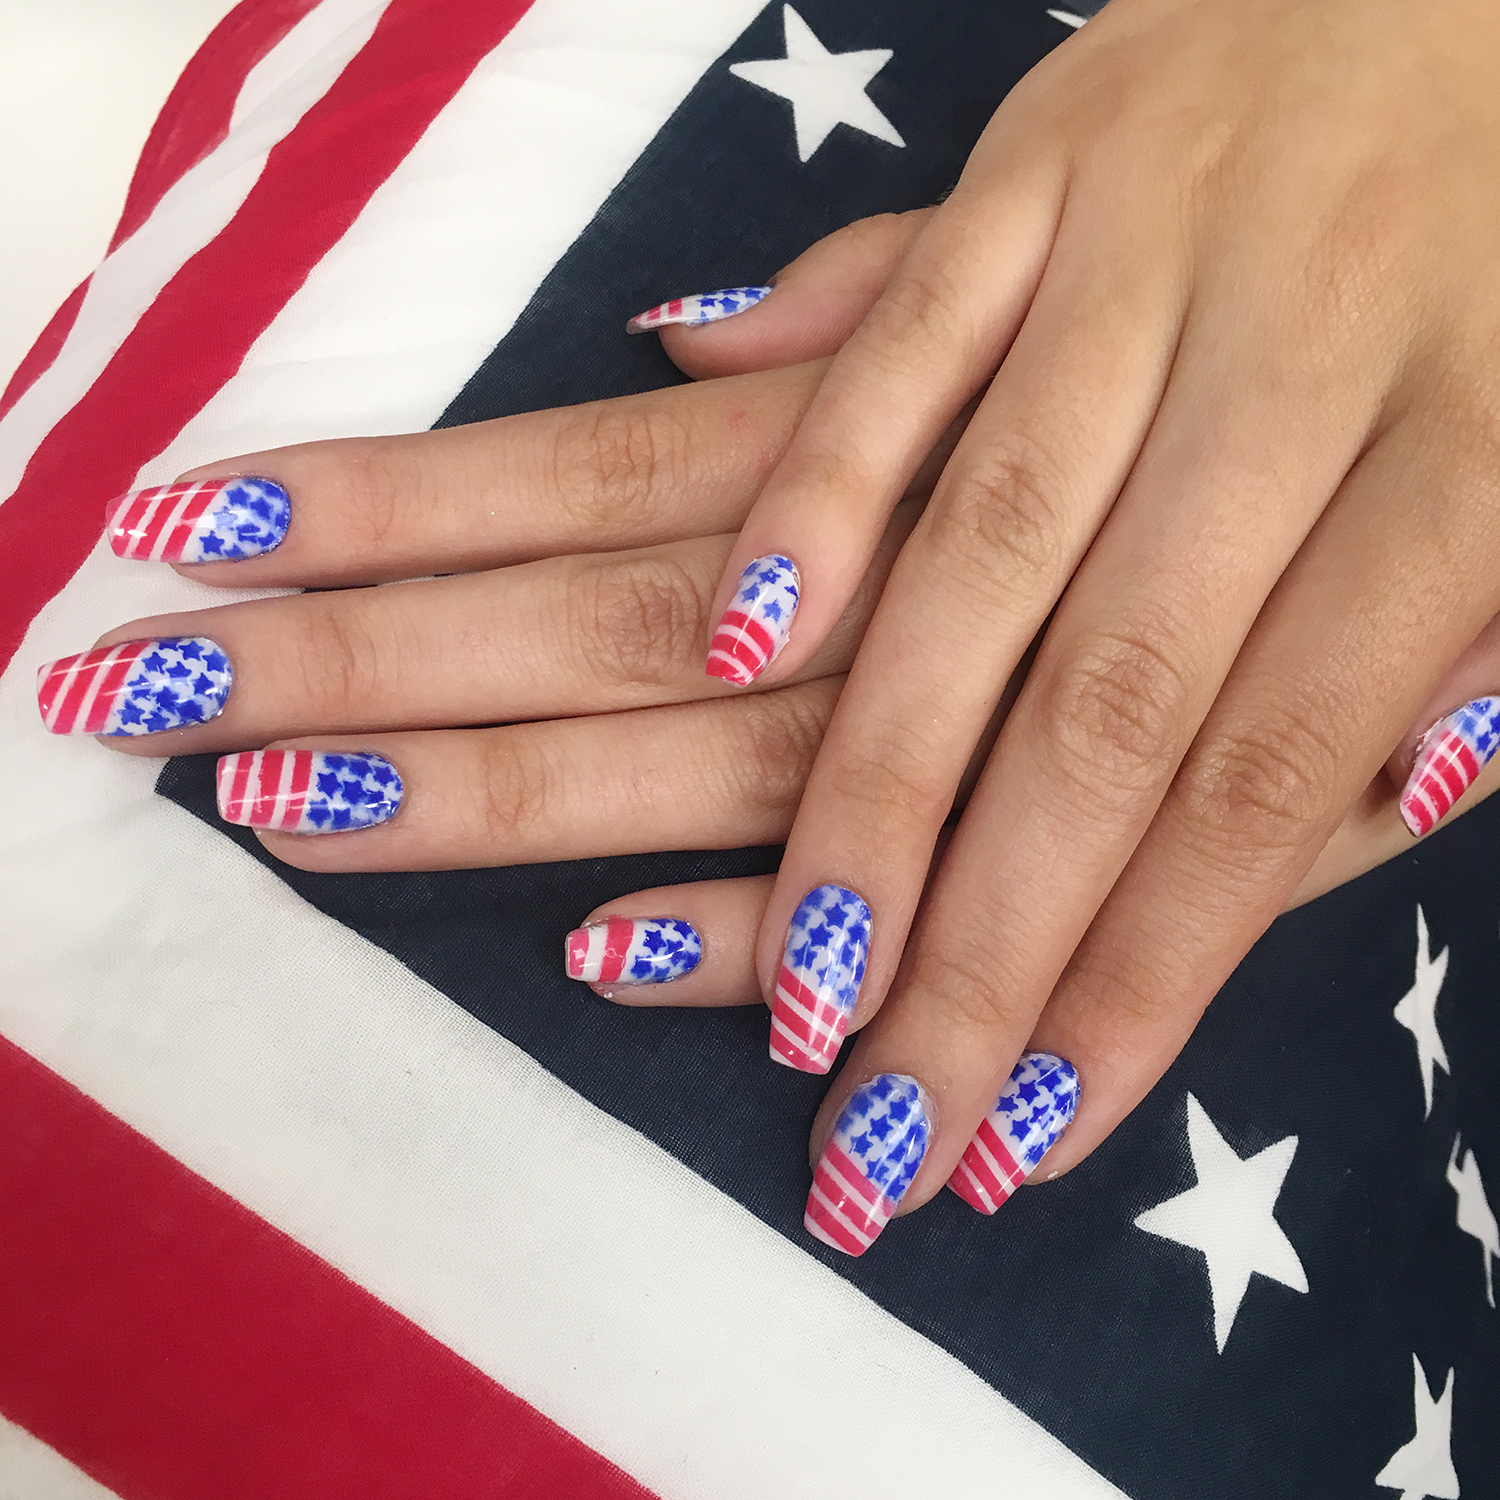 Festive Airbrushed Nails for 4th Of July | Dinair Airbrush Makeup Blog